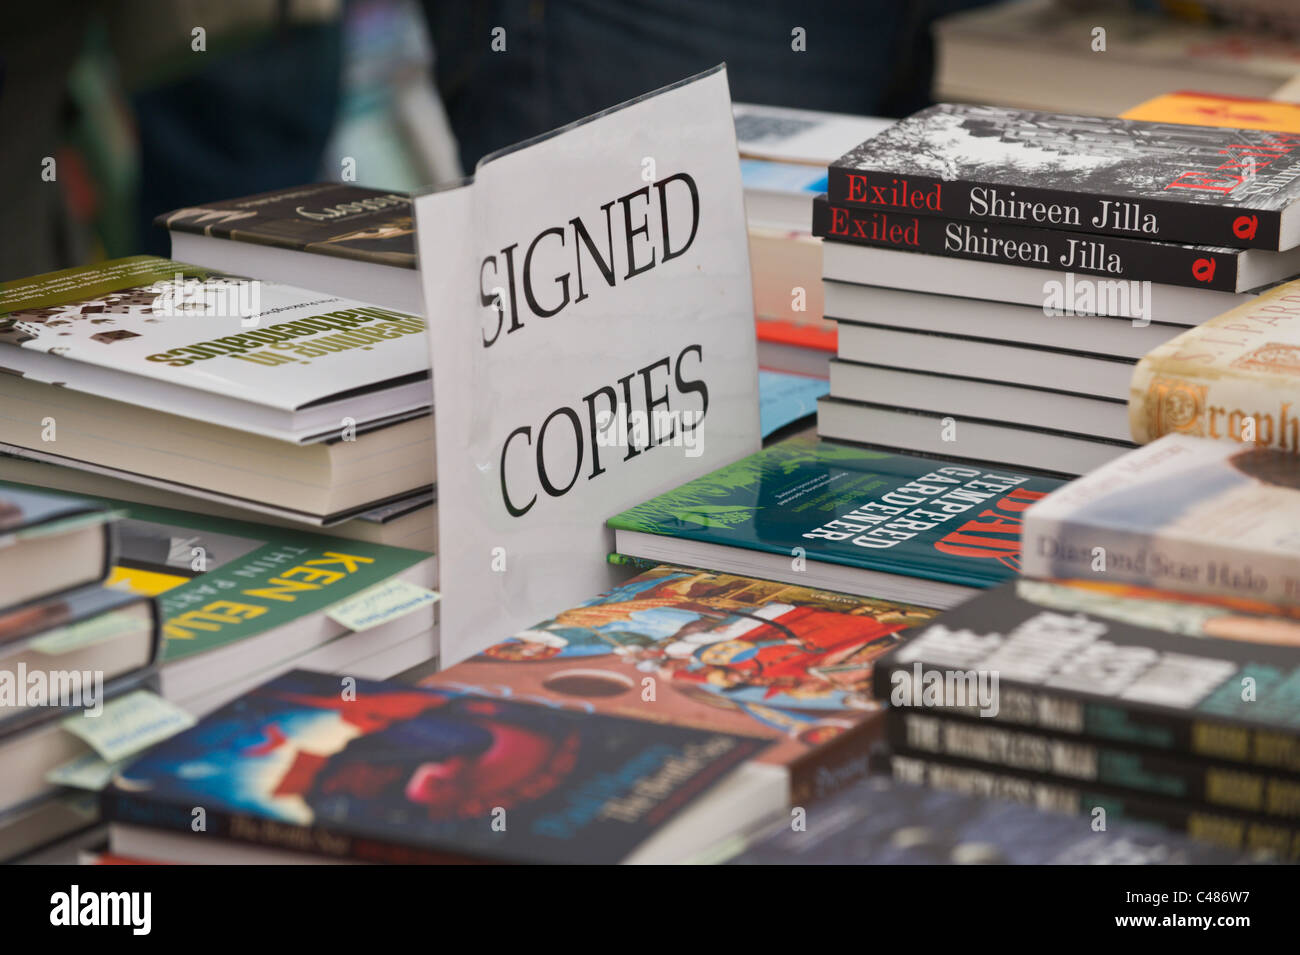 SIGNED COPIES selection of books by festival authors on sale in Pembertons Bookshop at Hay Festival 2011 - Stock Image